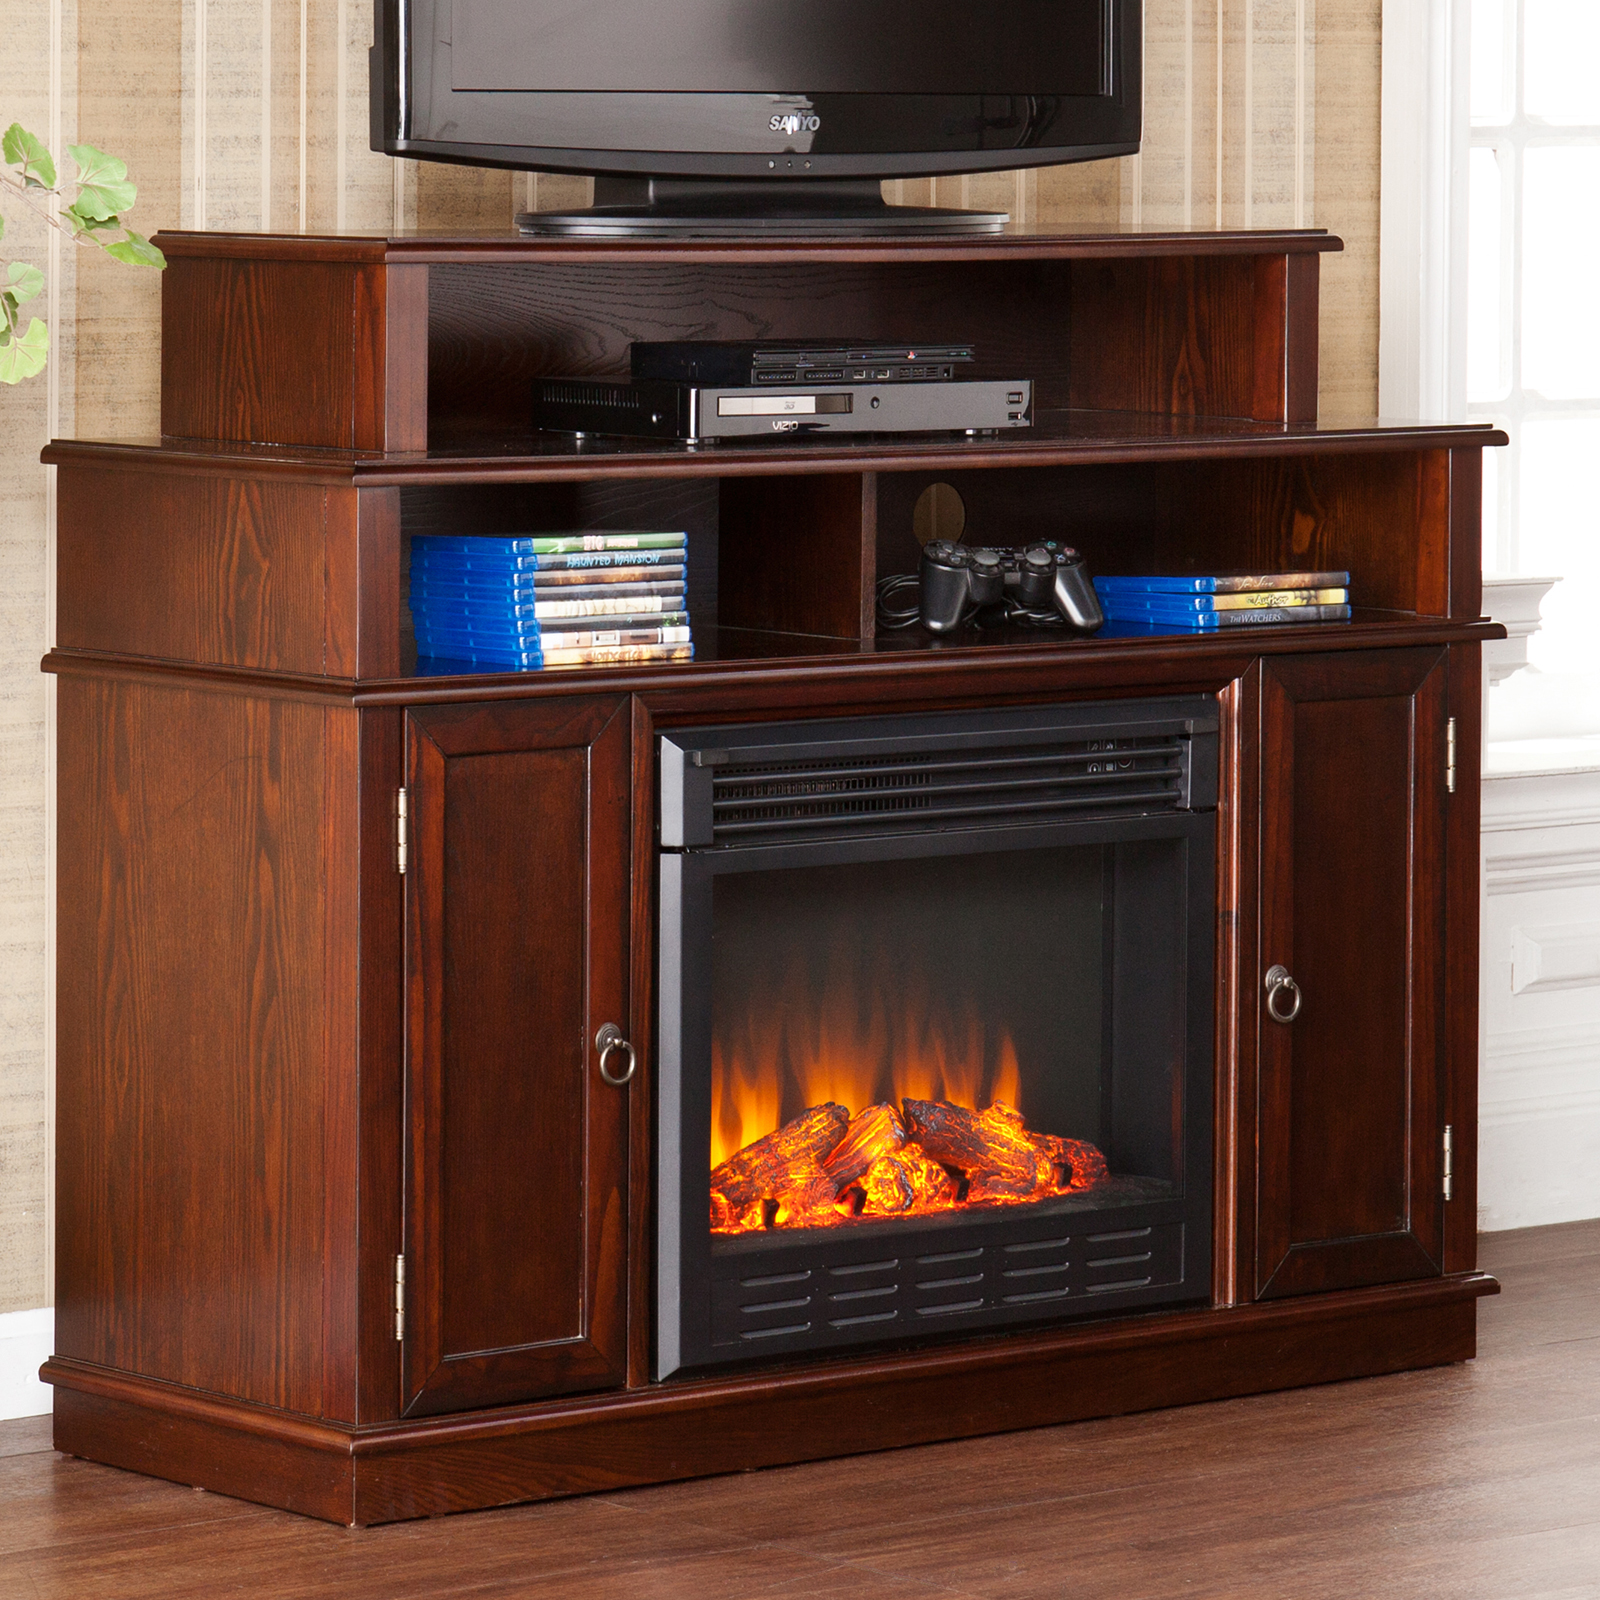 Southern Enterprises Lynden Espresso Electric Fireplace Media Console |  Hayneedle